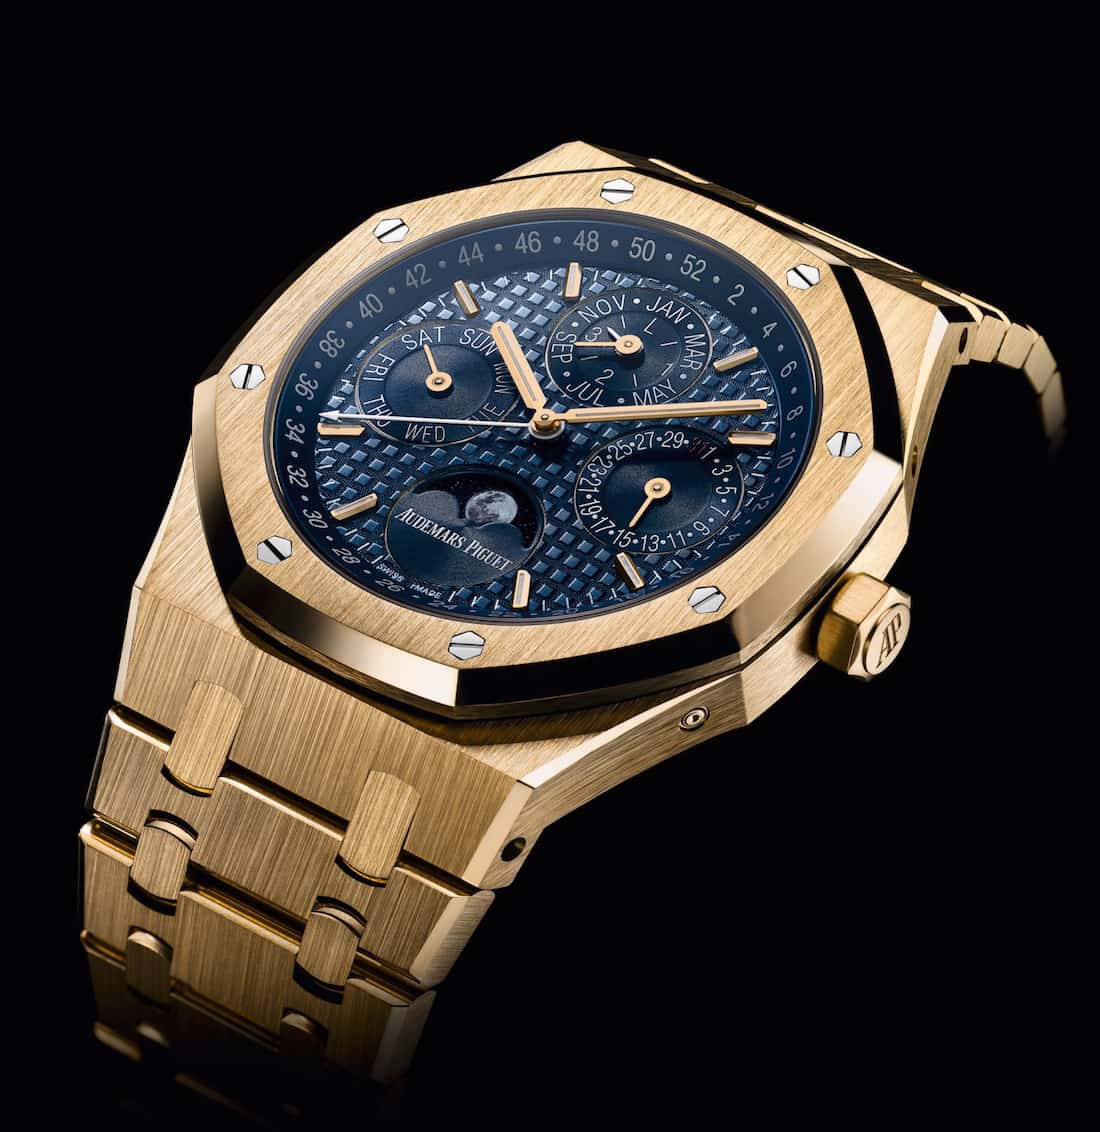 Audemars Piguet Royal Oak Perpetual Calendar In Yellow Gold